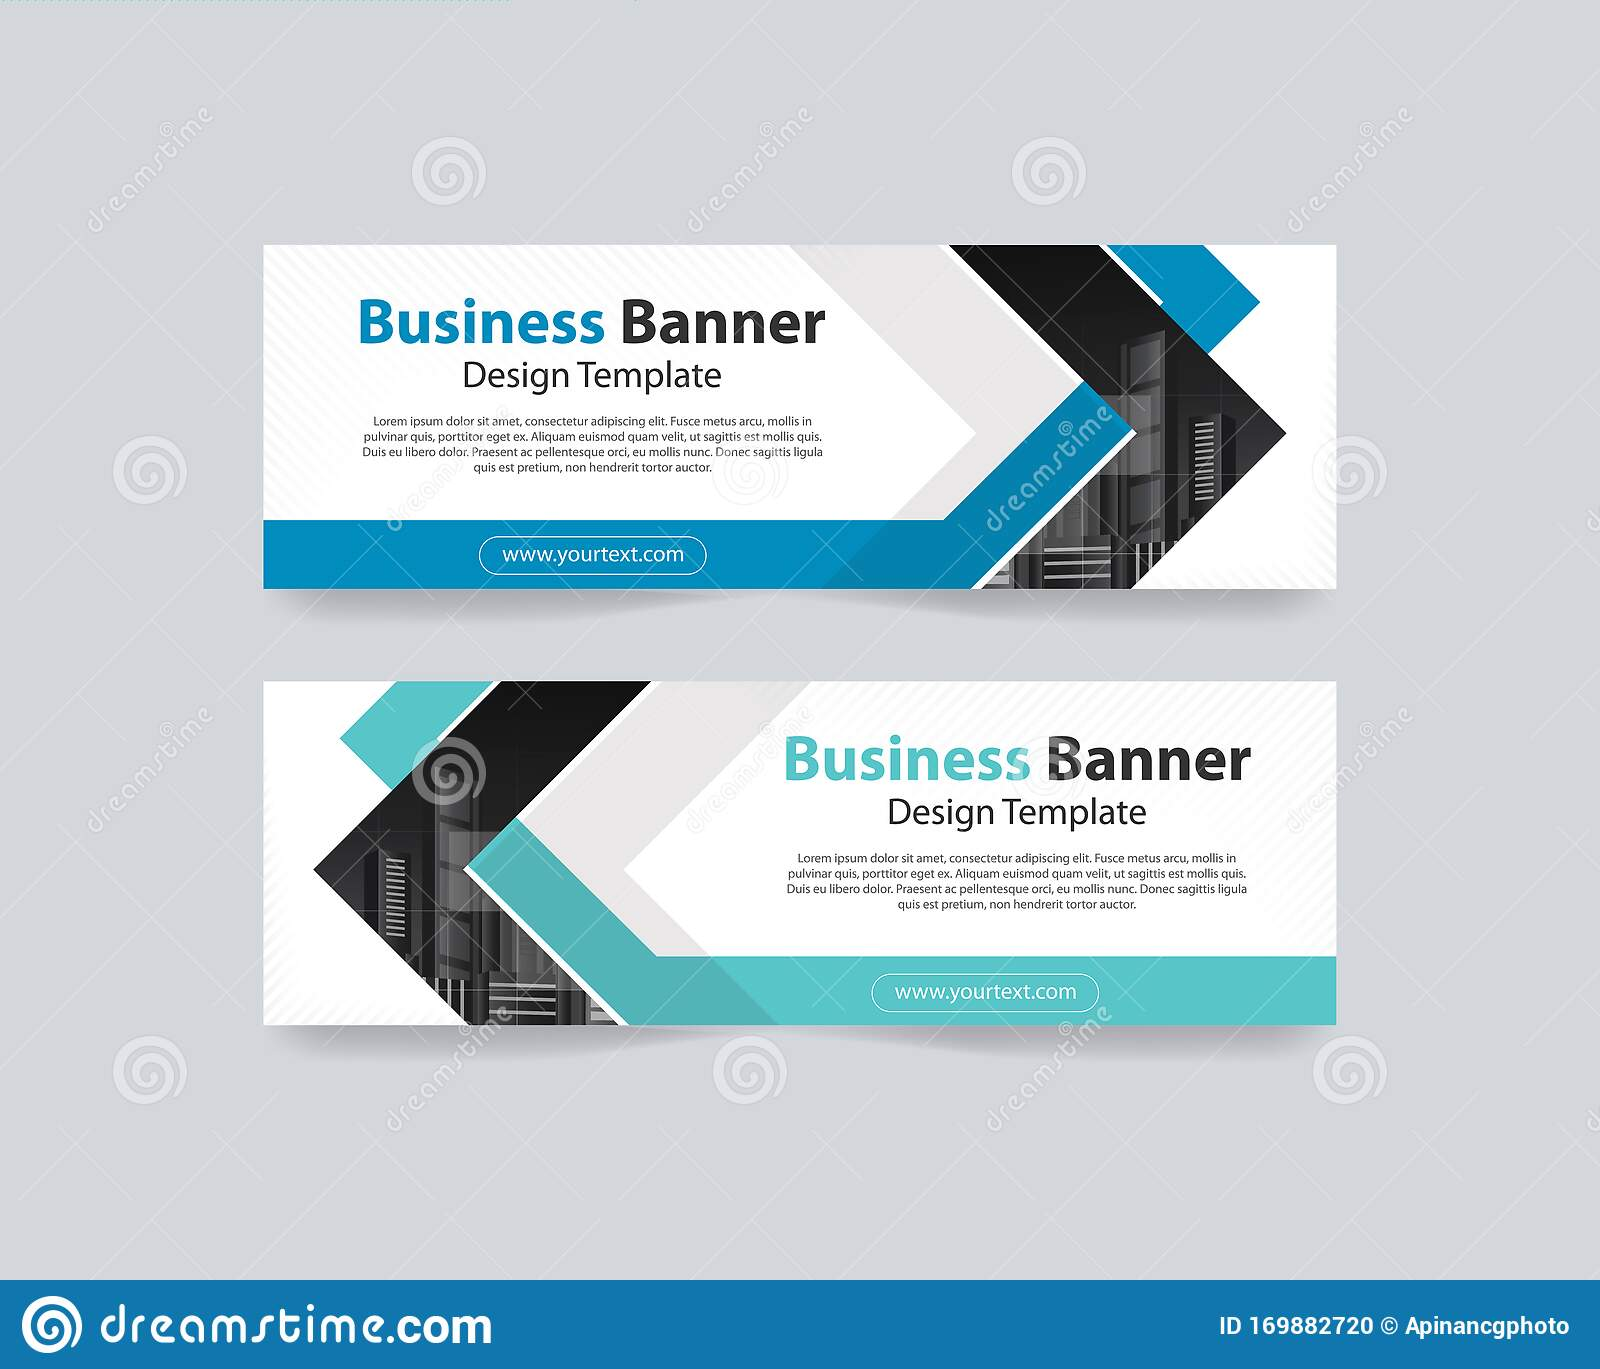 Abstract Web Banner Design Template Backgrounds Stock Vector Illustration Of Graphic Presentation 169882720